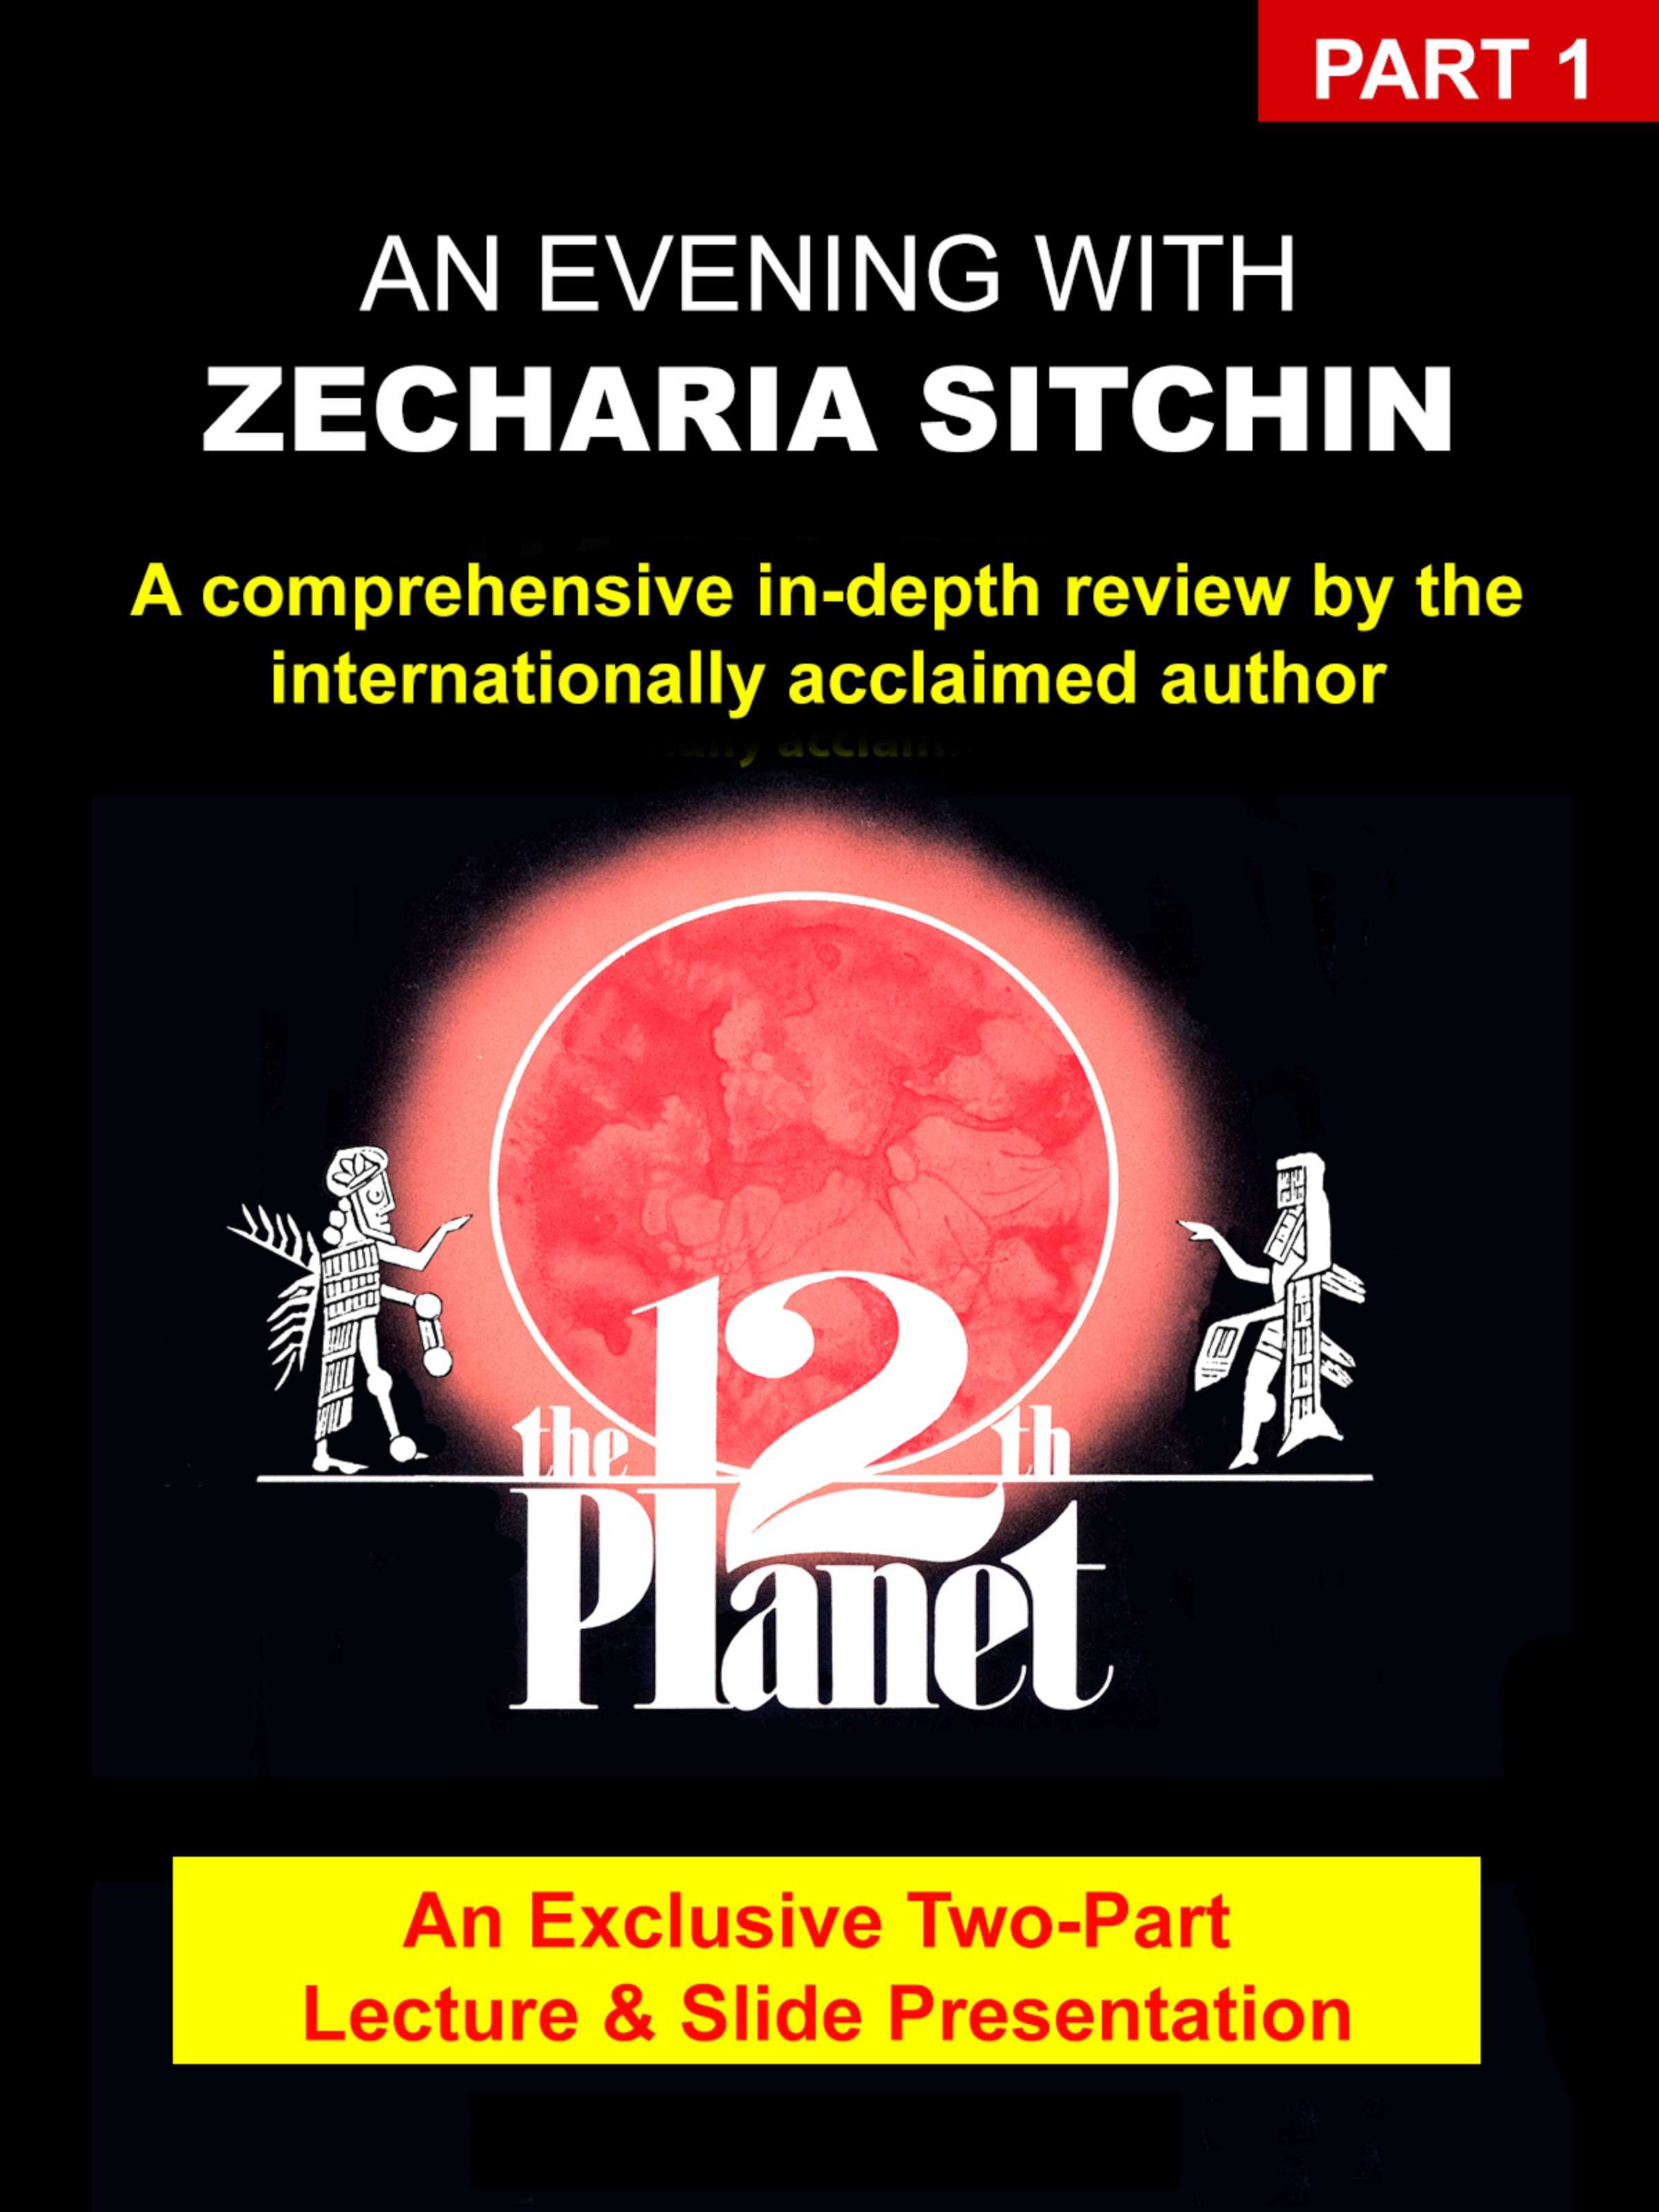 An Evening With Zecharia Sitchin - Part 1